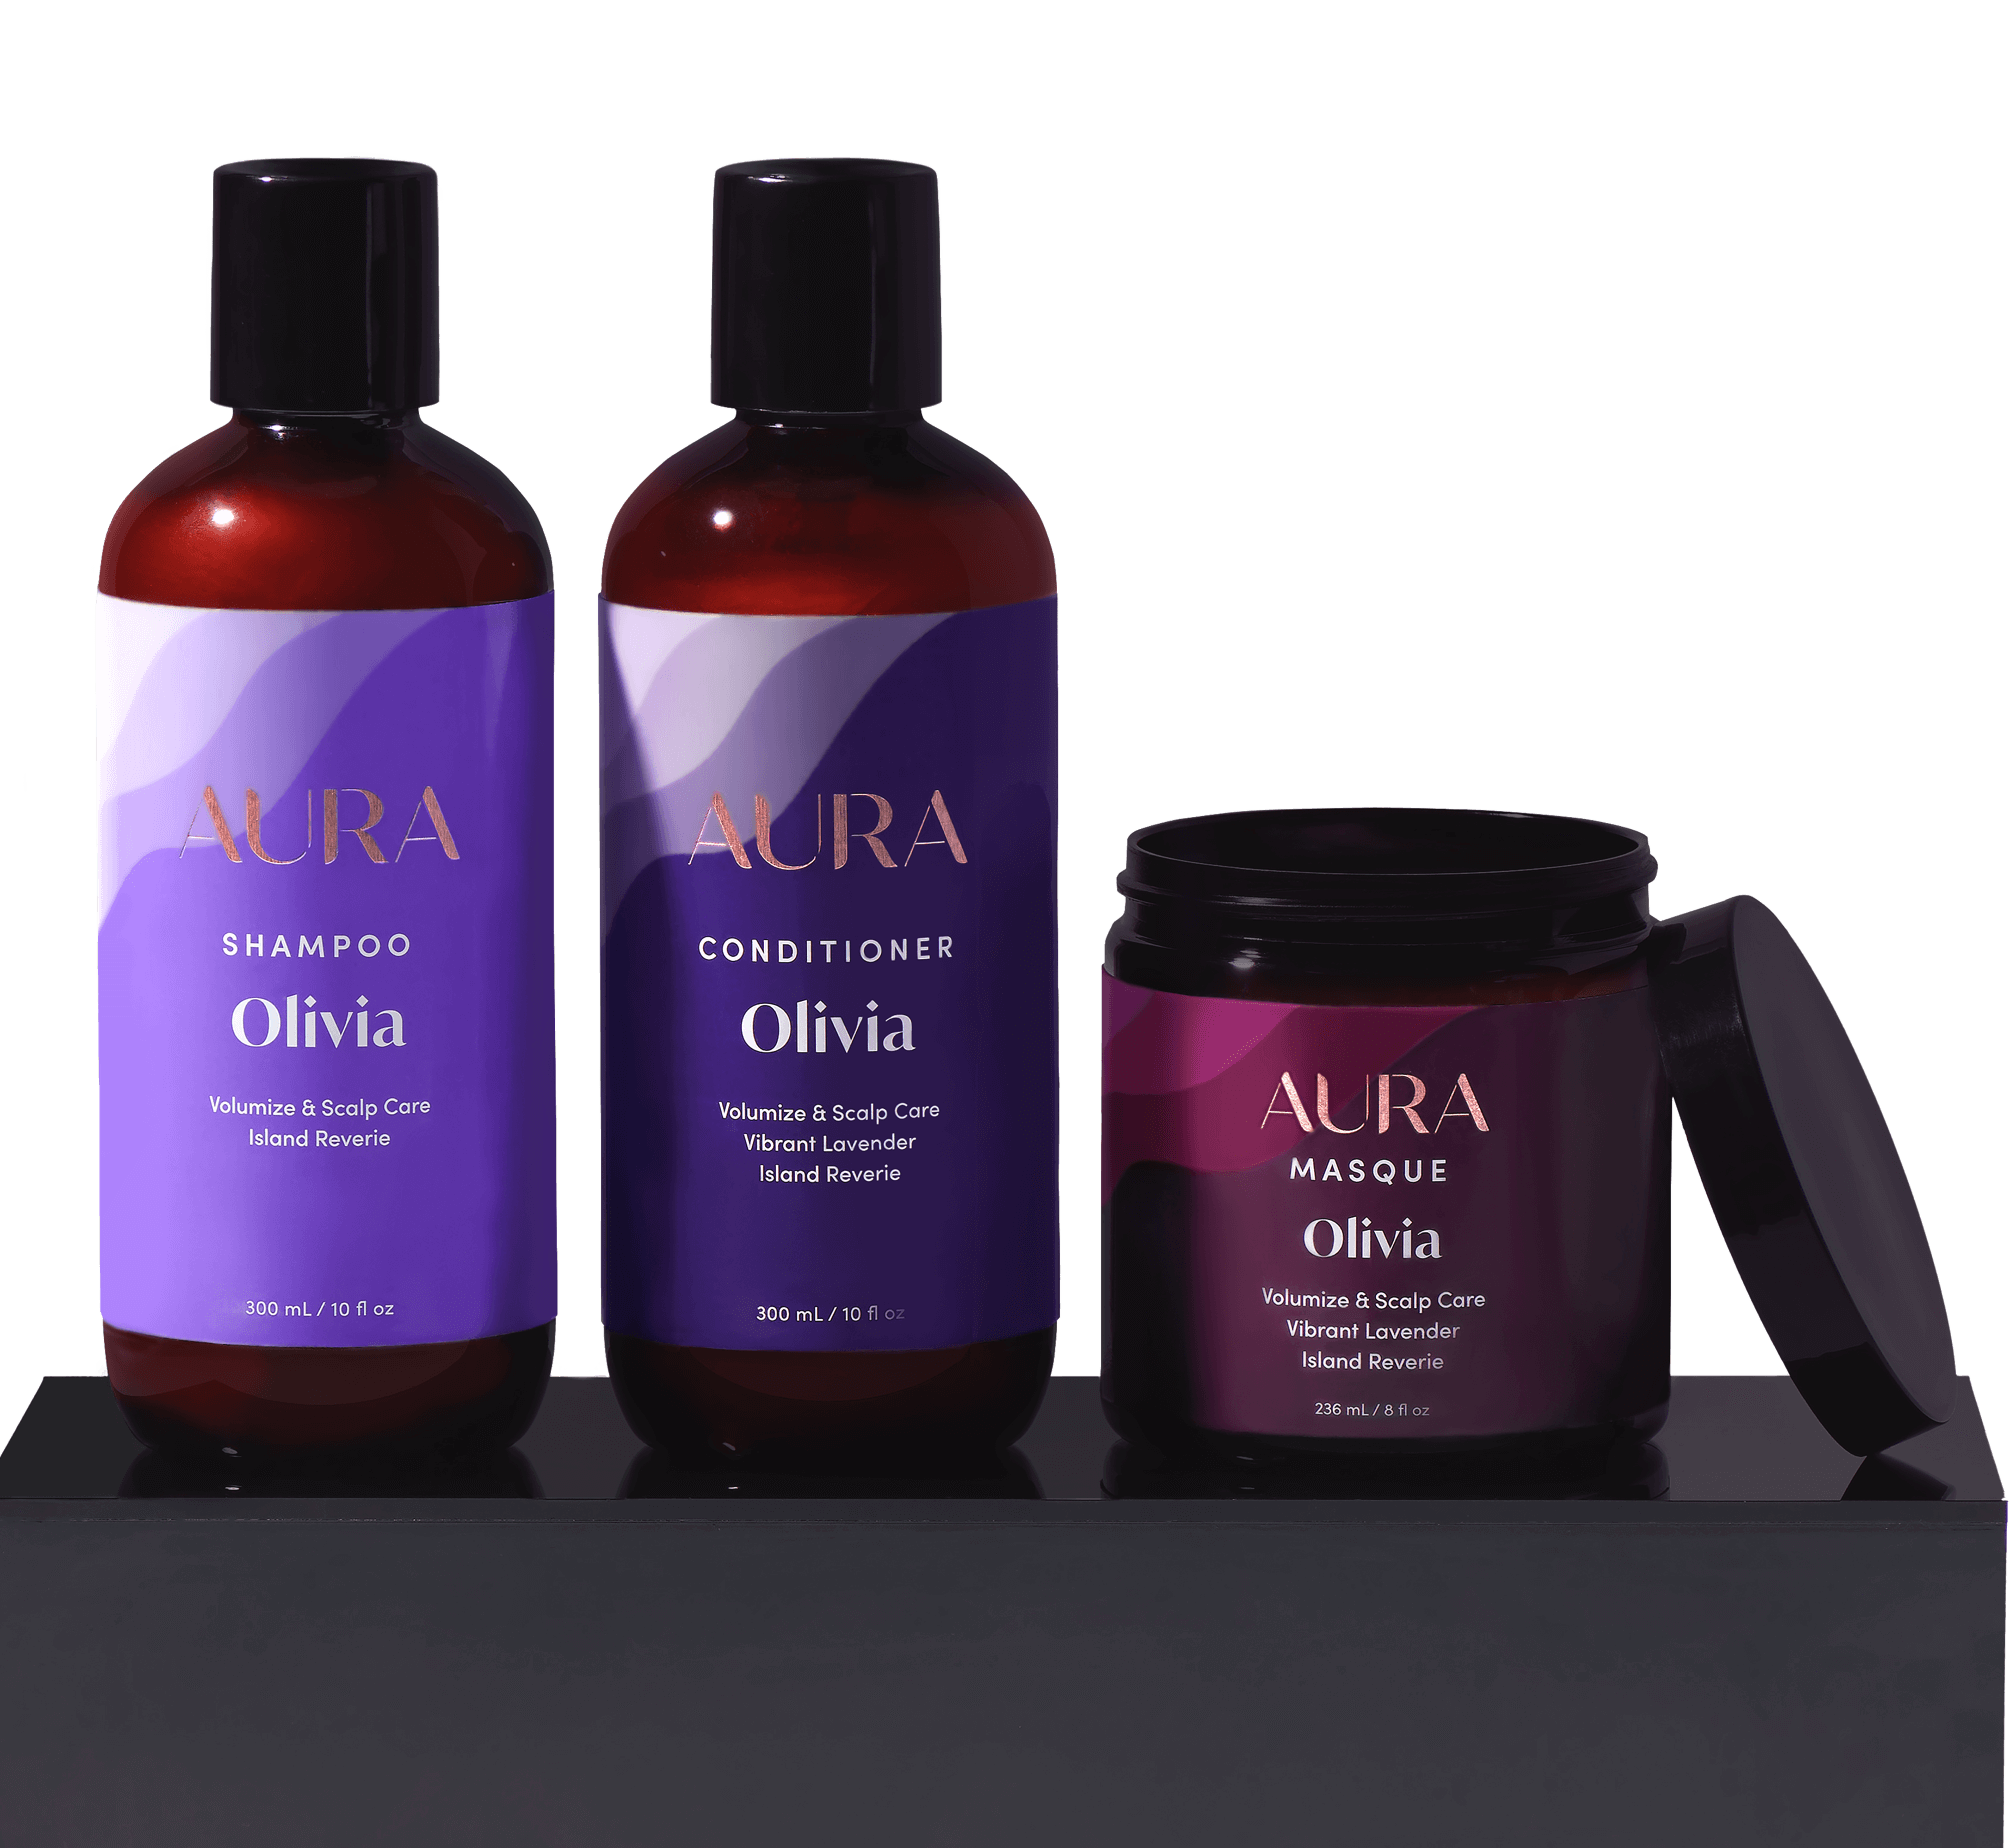 Aura custom hair care box with shampoo, conditioner, and mask